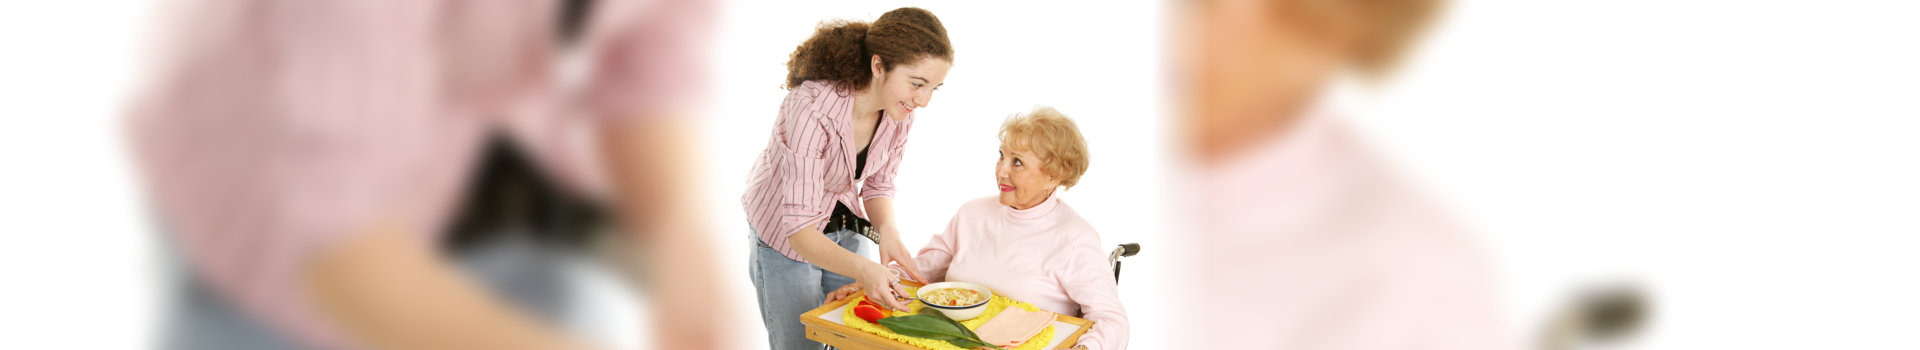 Caregiver preparing meal for the old woman